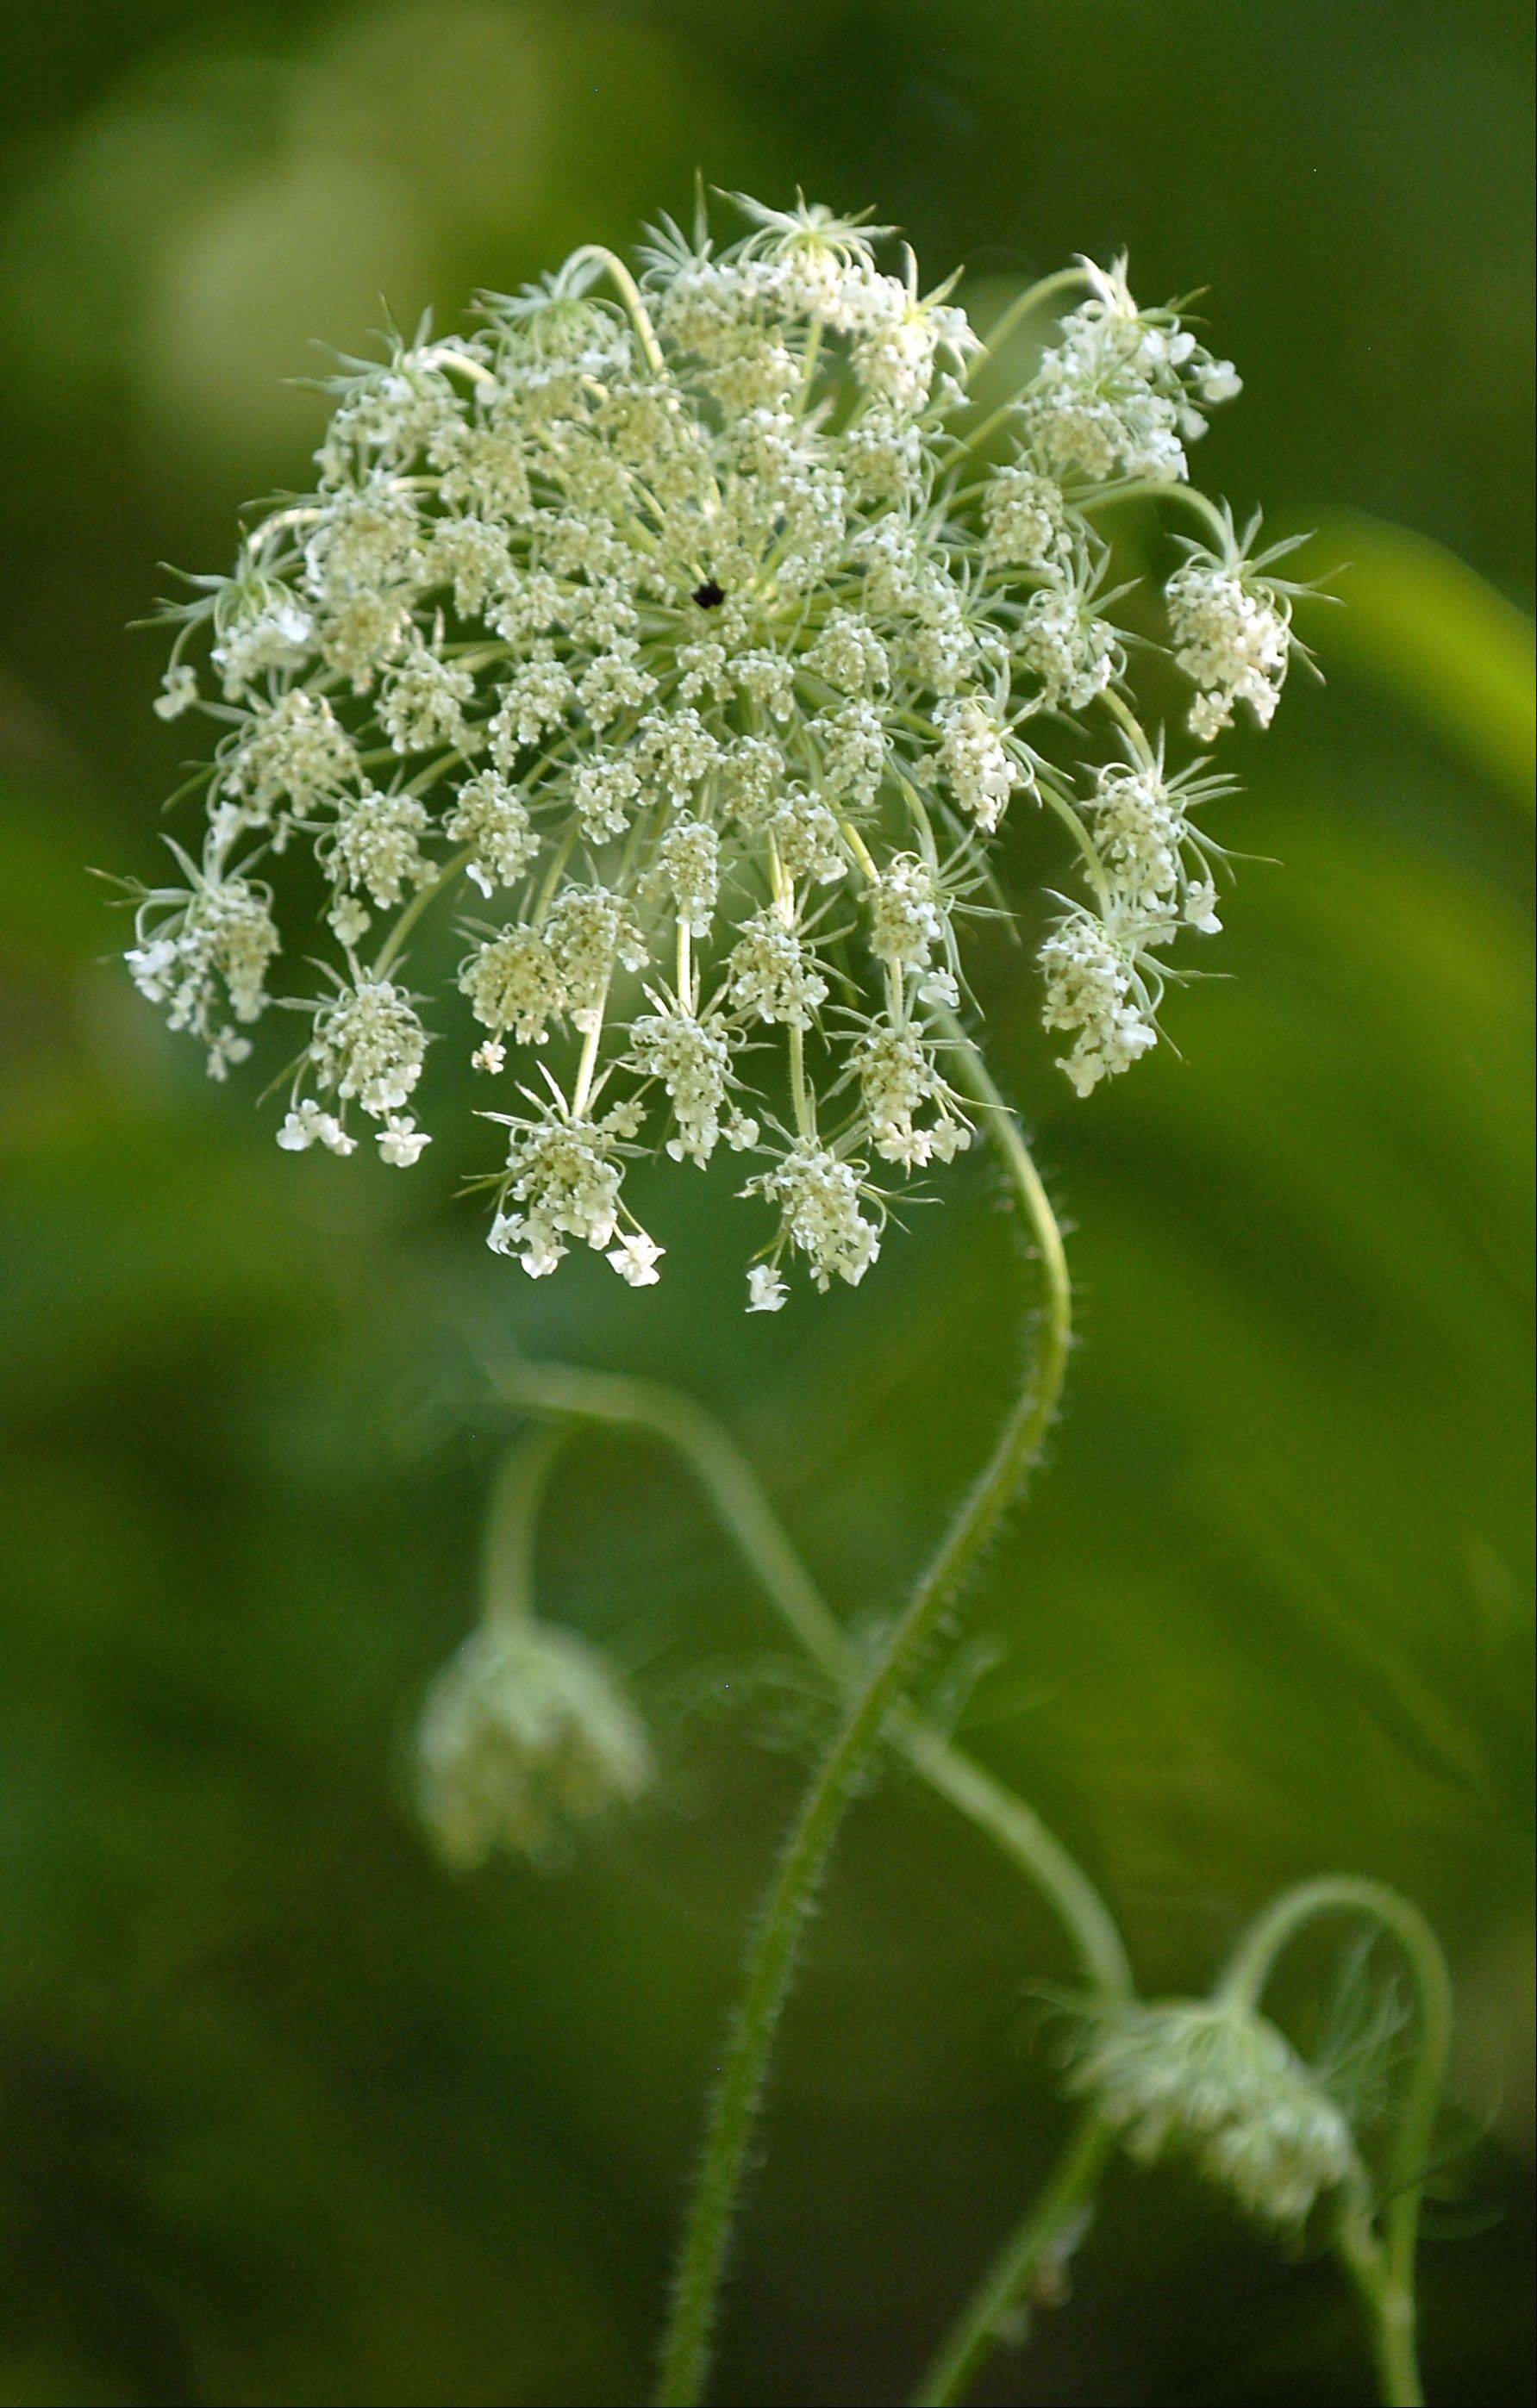 Normally drought-hardy Queen Anne's Lace can be found looking droopy due to the lack of rain this summer.